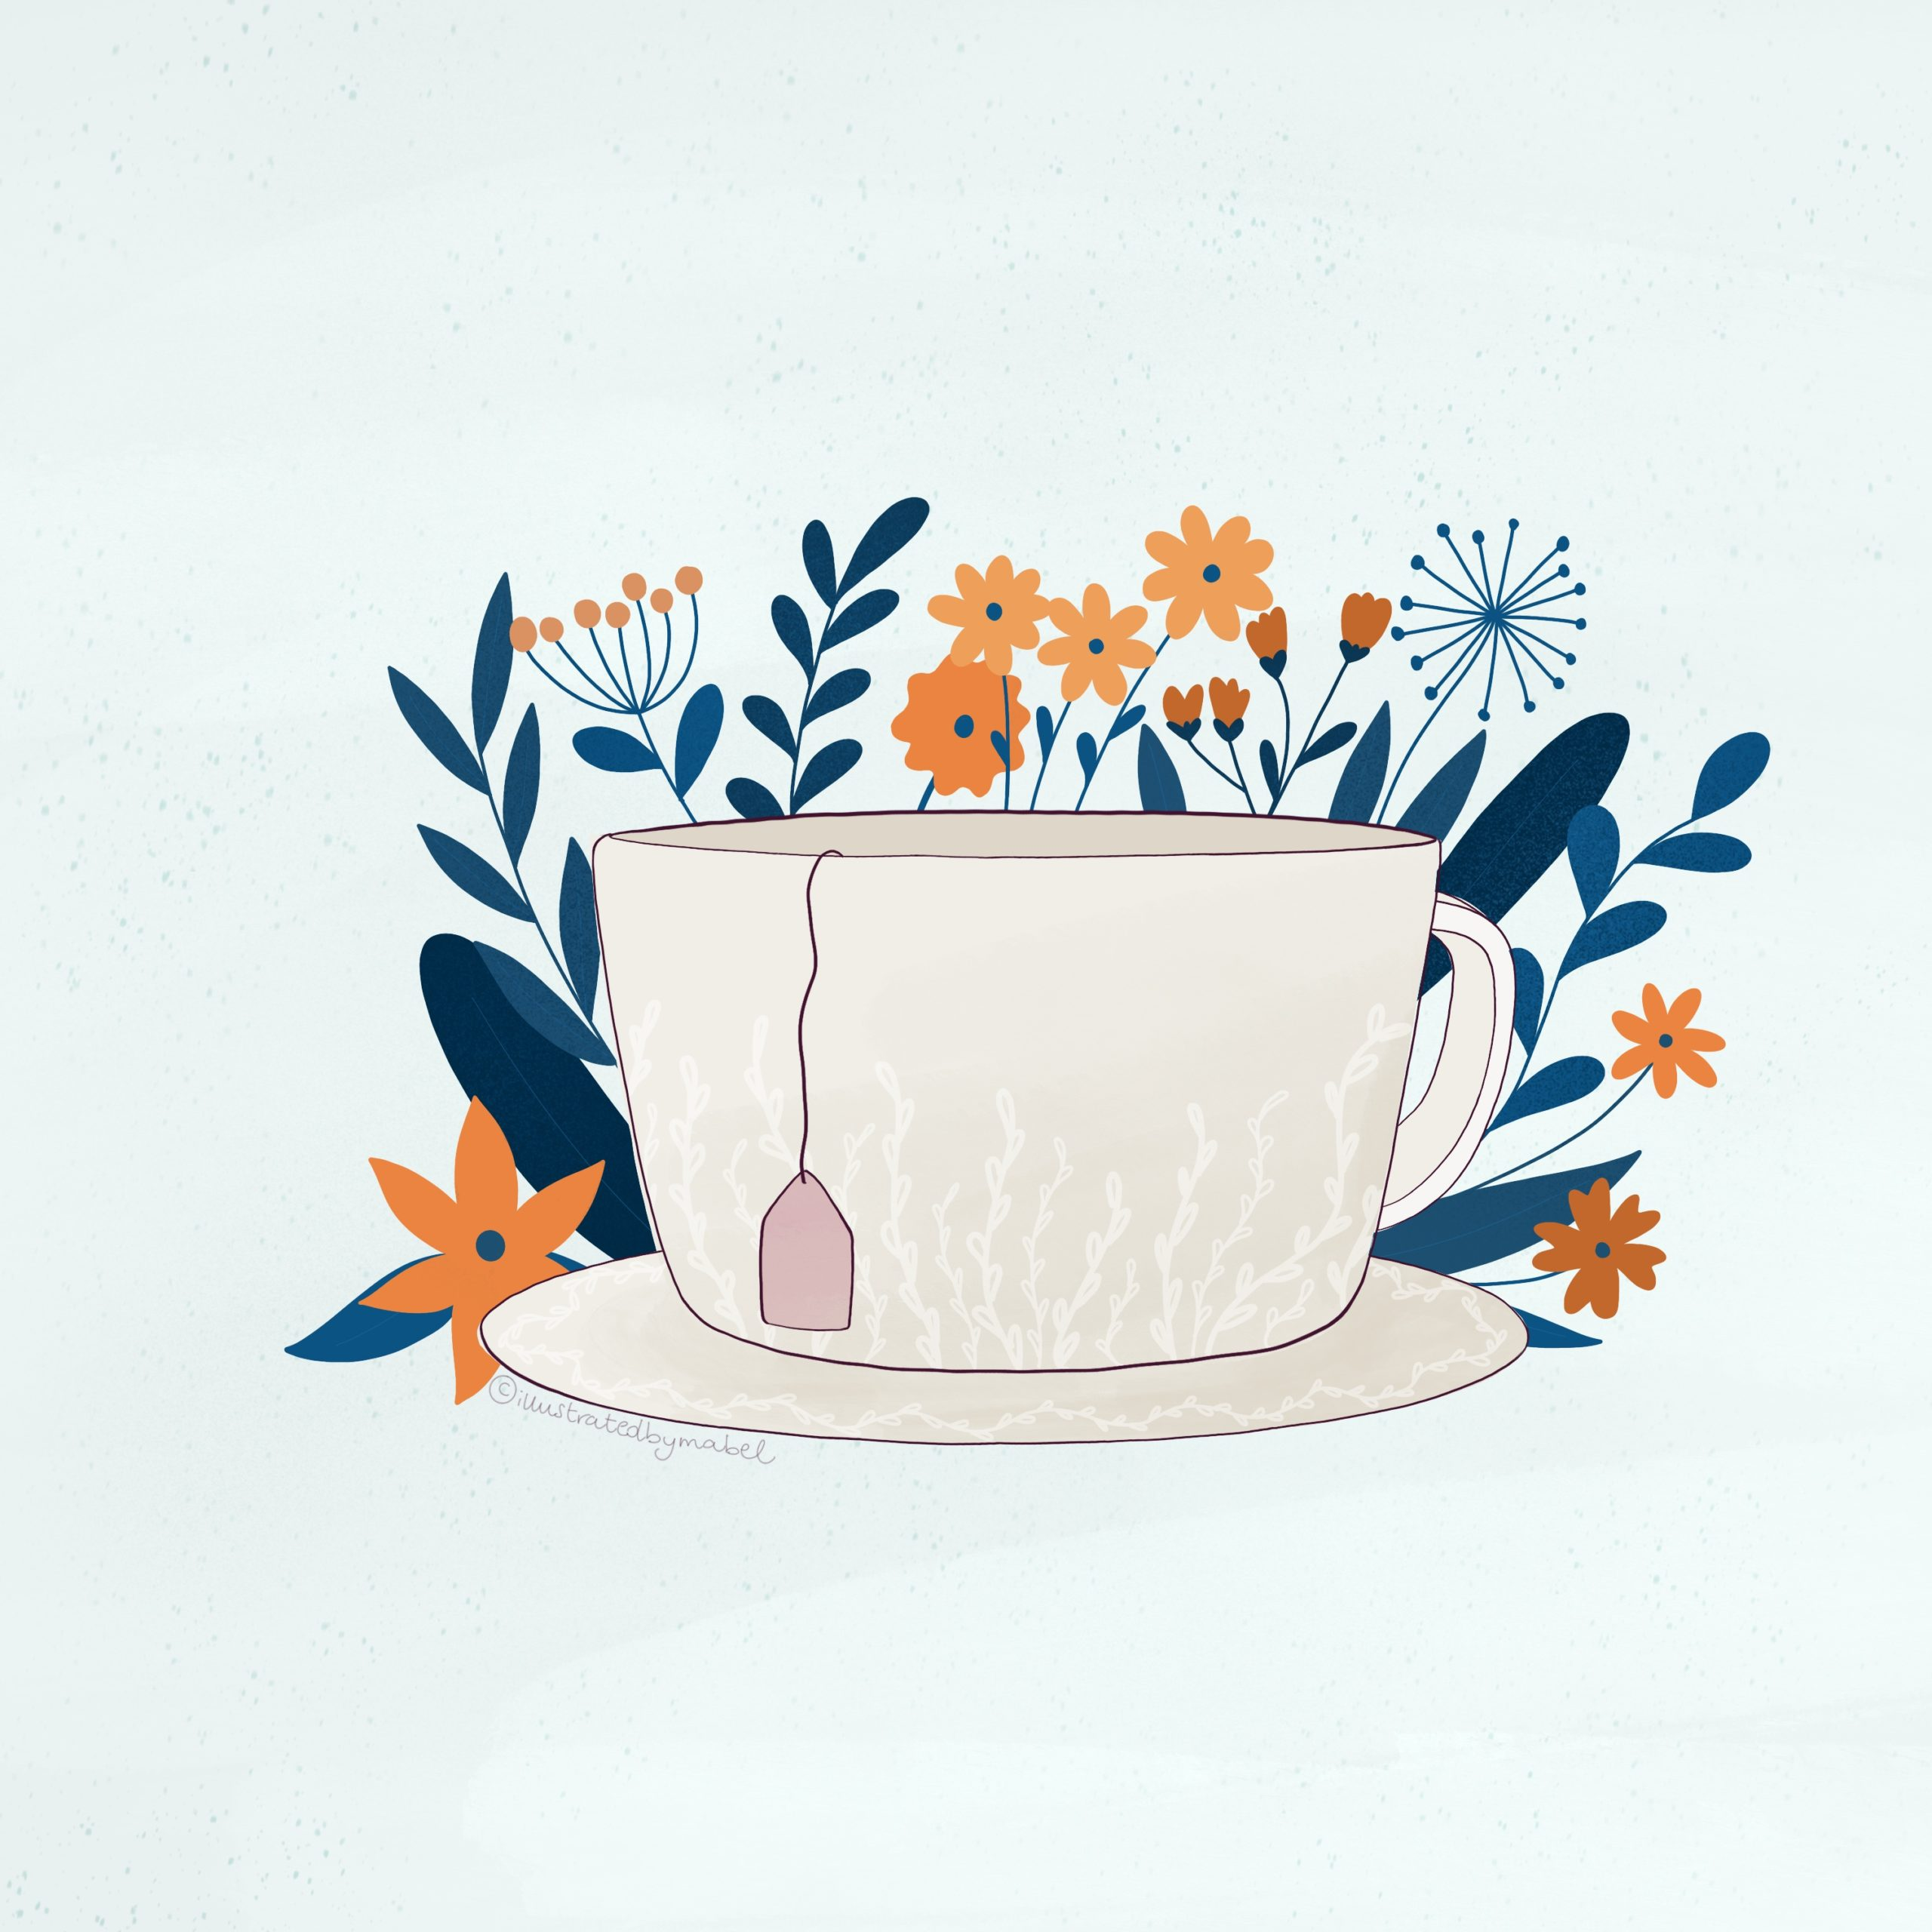 Illustration of a ceramic cup with tea and flowers on the background